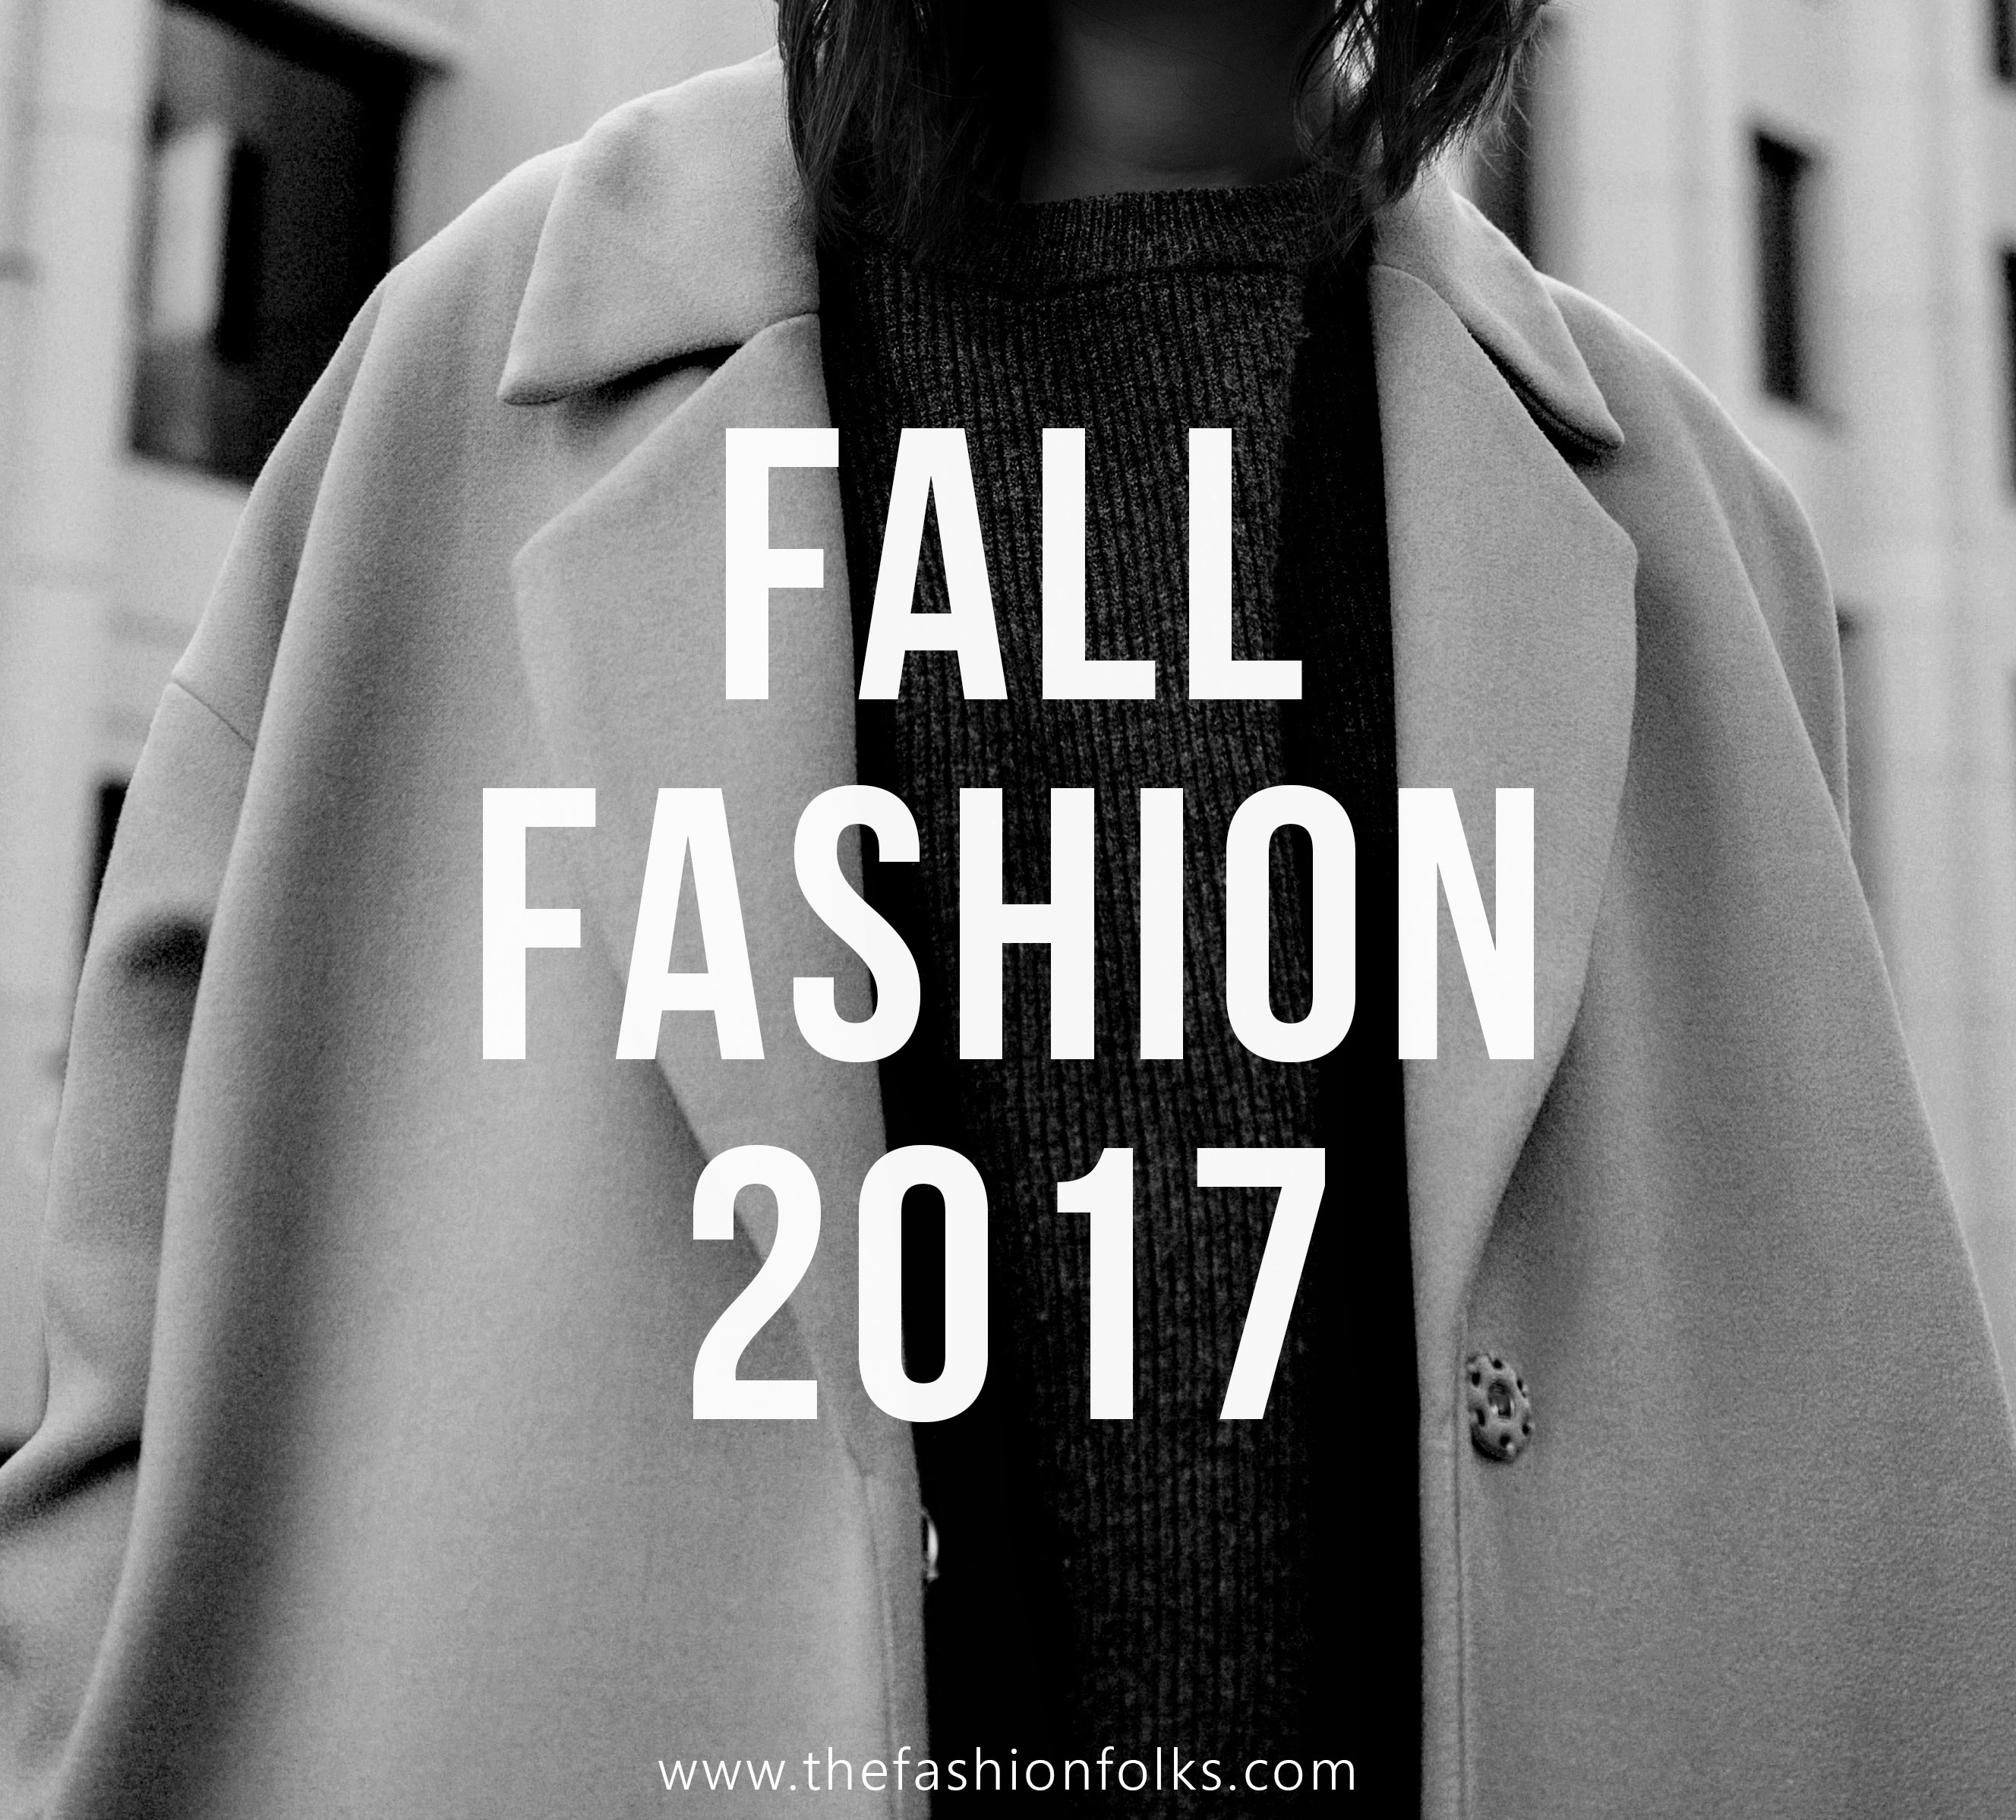 Fall Fashion 2017 - The Fashion Folks